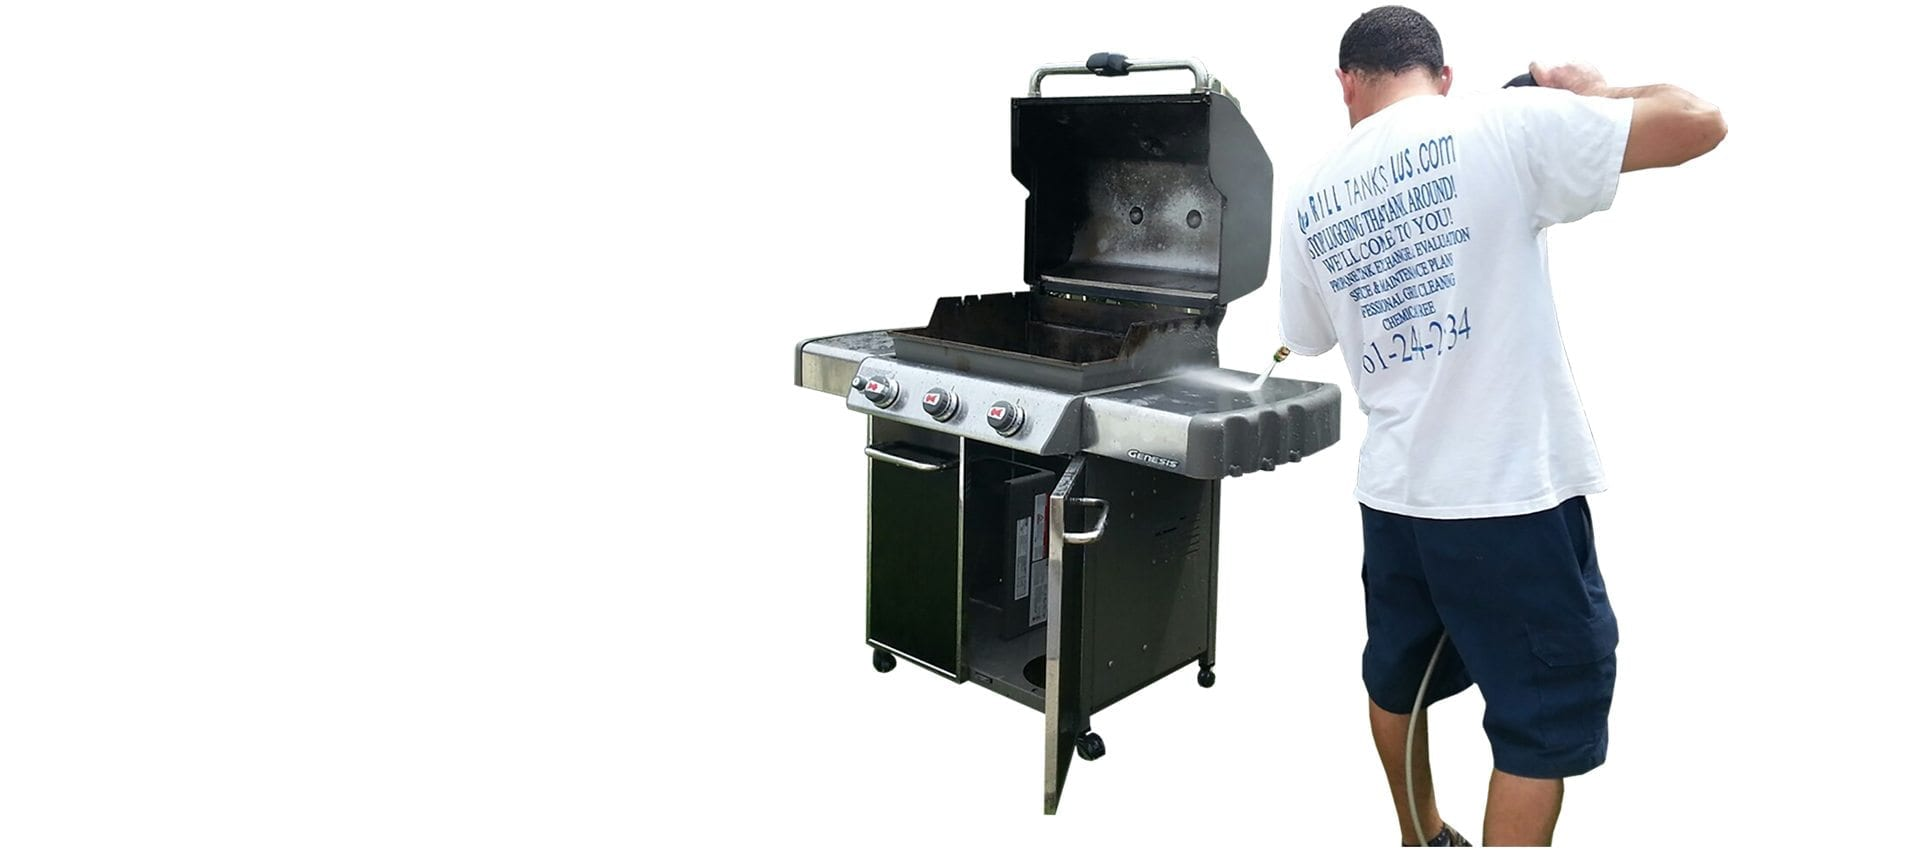 Grill Tanks Plus employee BBQ Grill Cleaning